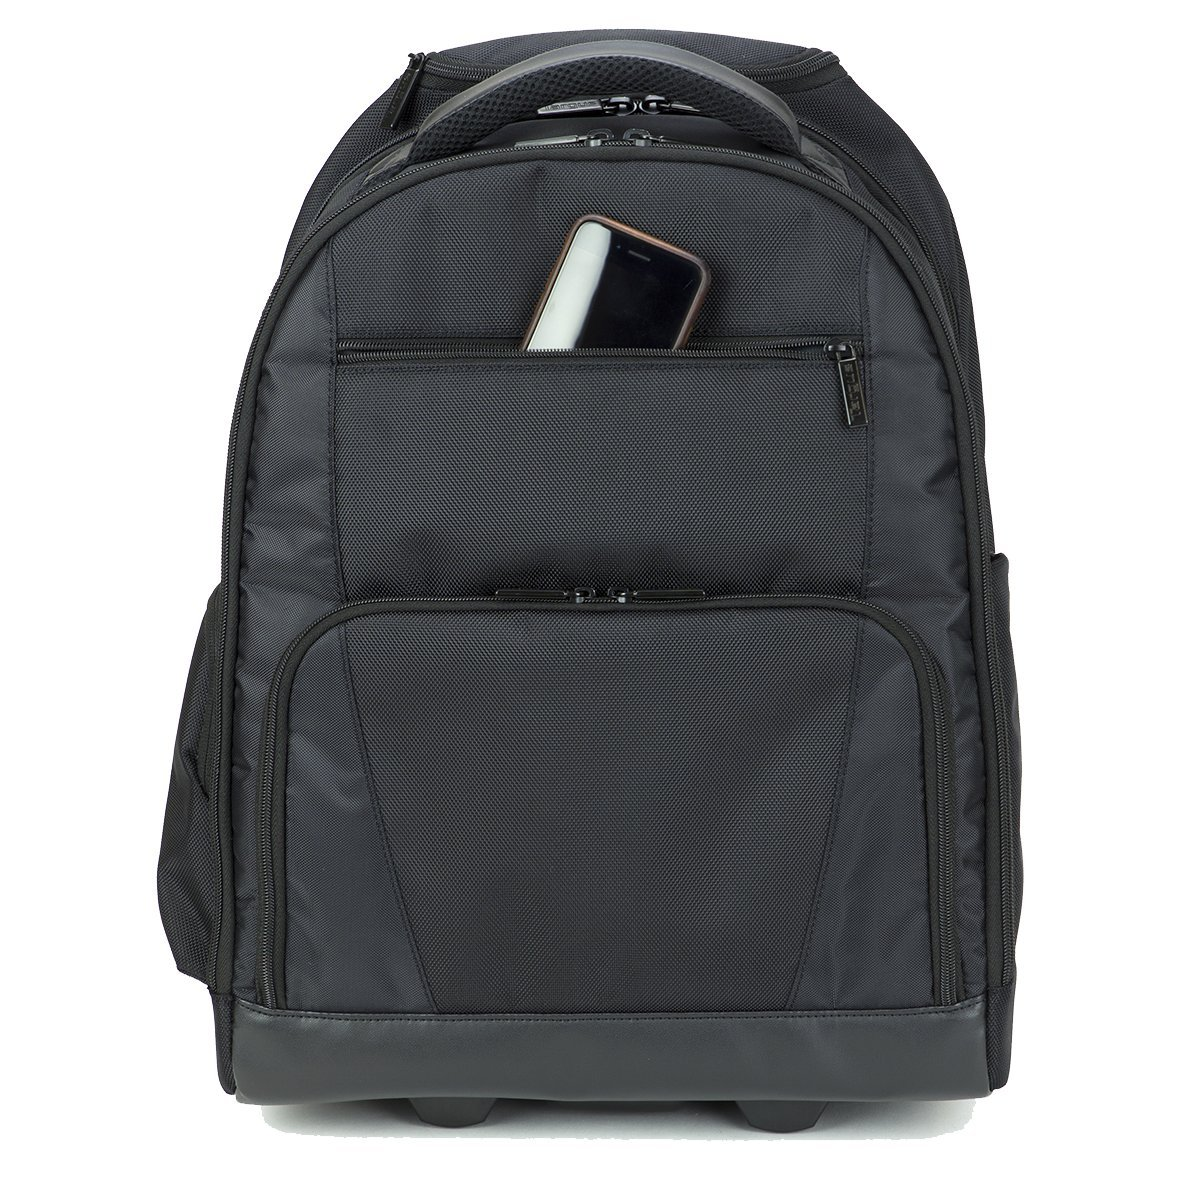 Targus TSB700EU CityGear Rolling Backpack - Black Computer Peripheral Other Computer_Peripherals 15.4